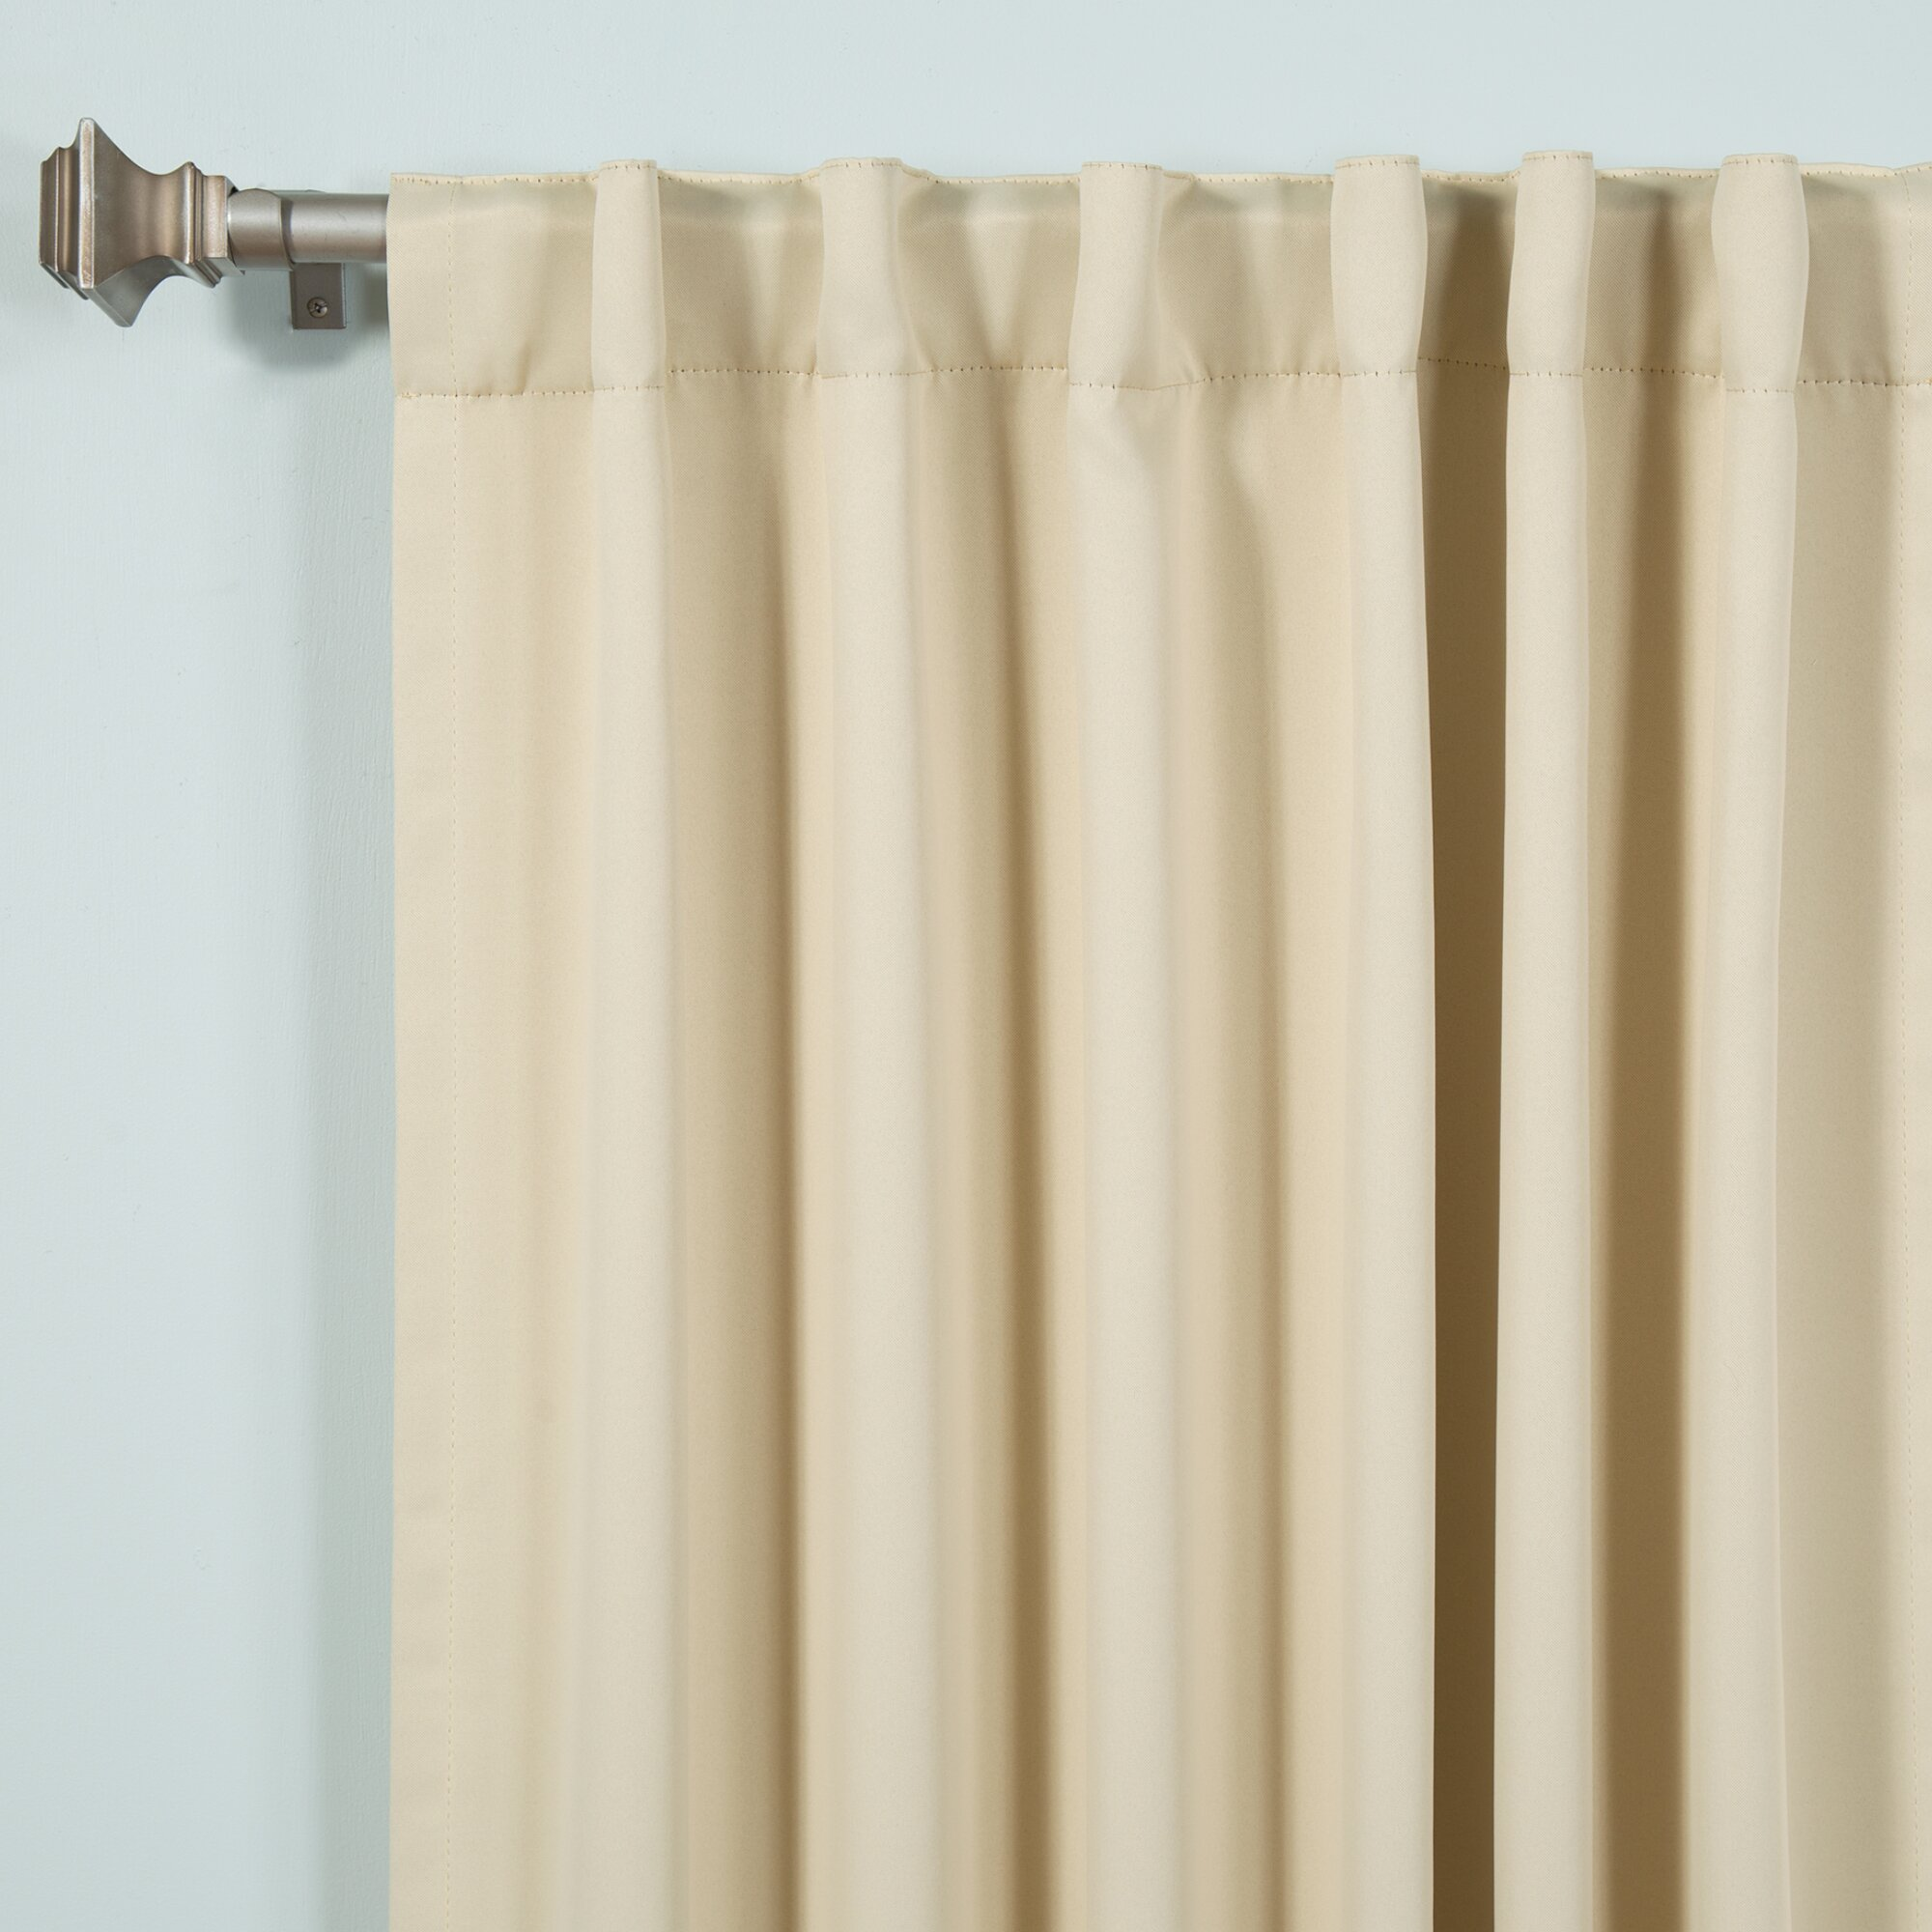 Insulated Curtains 28 Images Insulated Window Curtain Liner Curtain Menzilperde Net